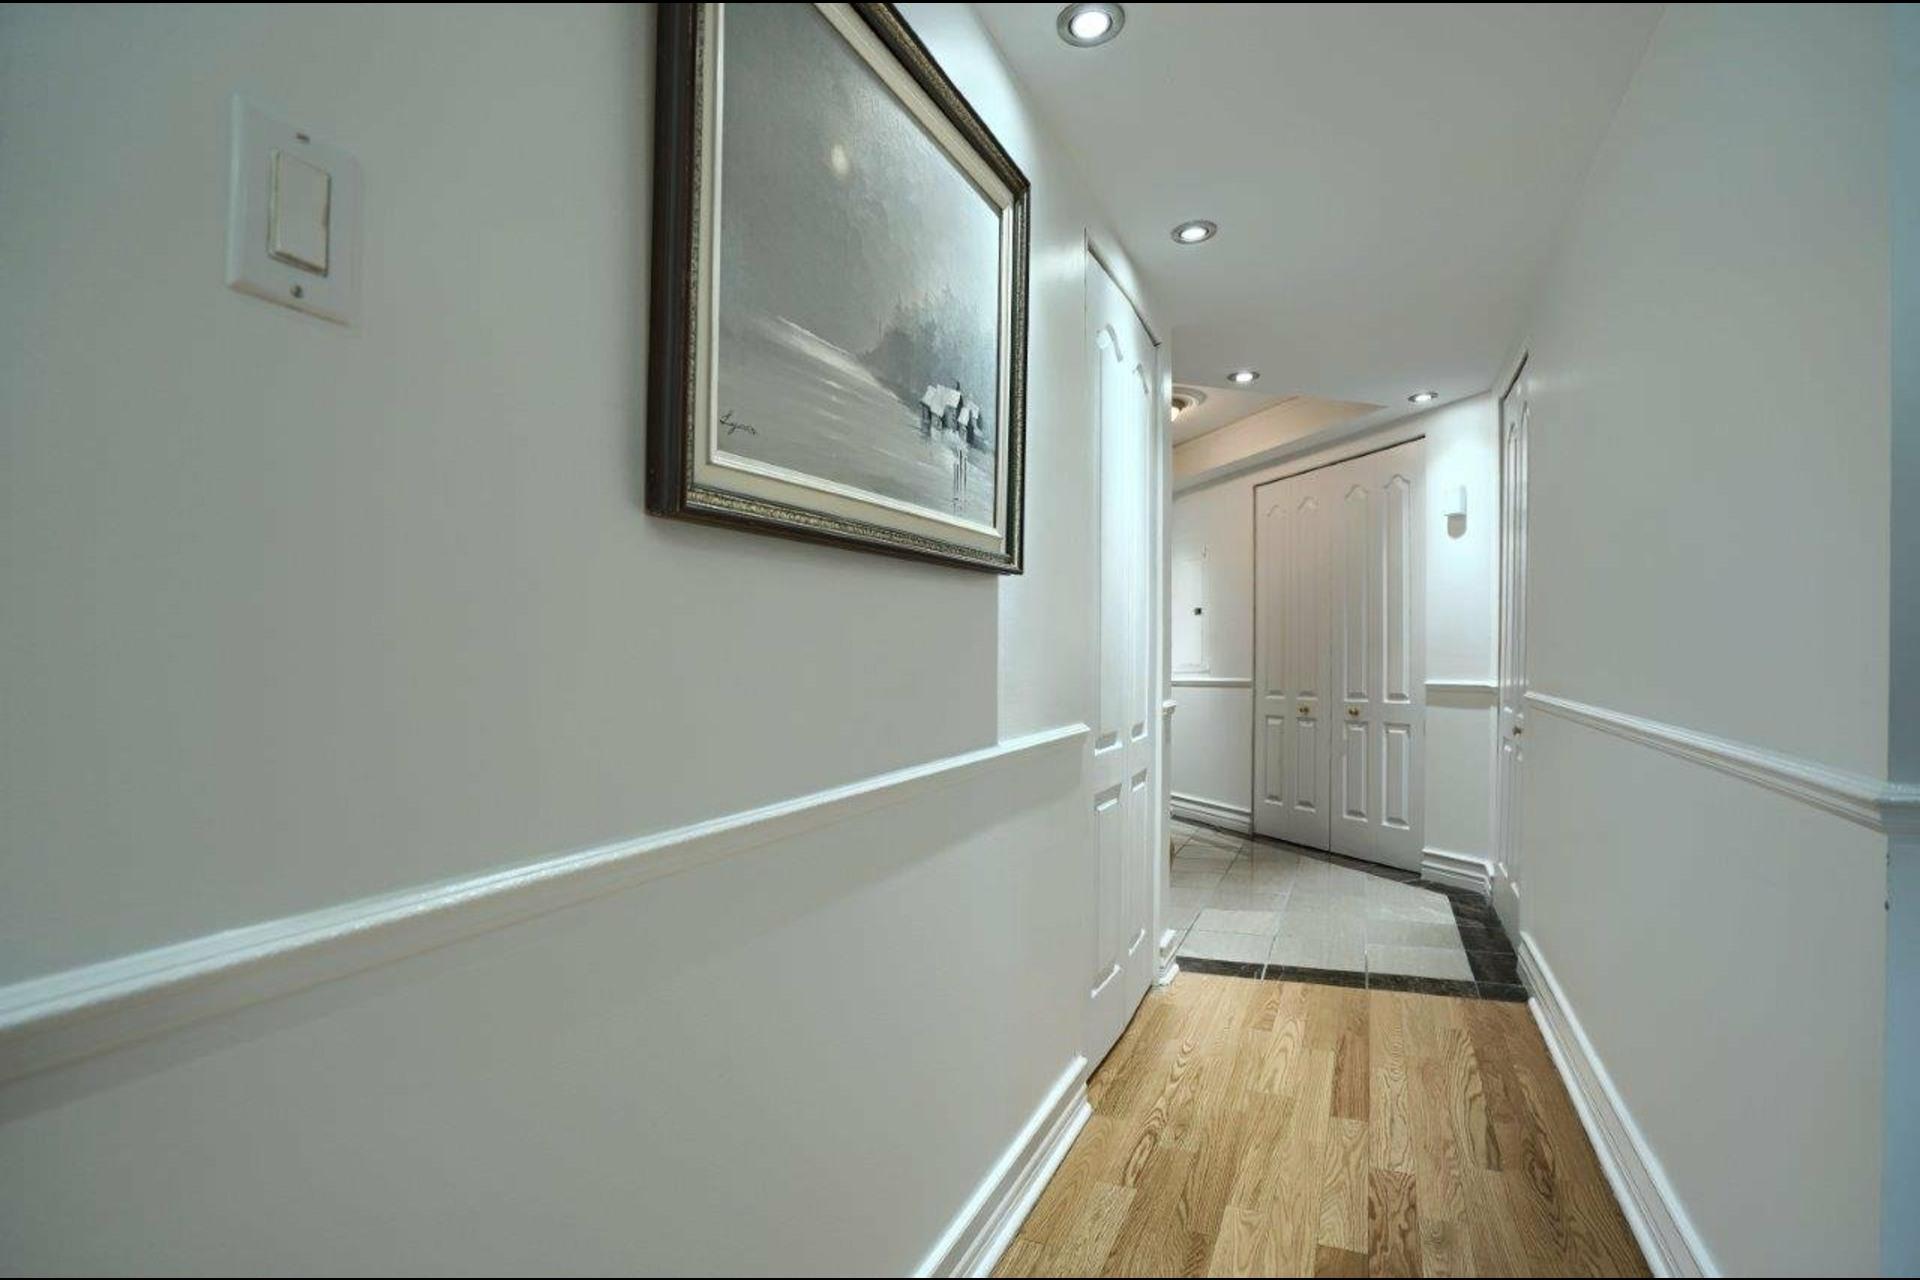 image 4 - Apartment For sale Brossard - 5 rooms